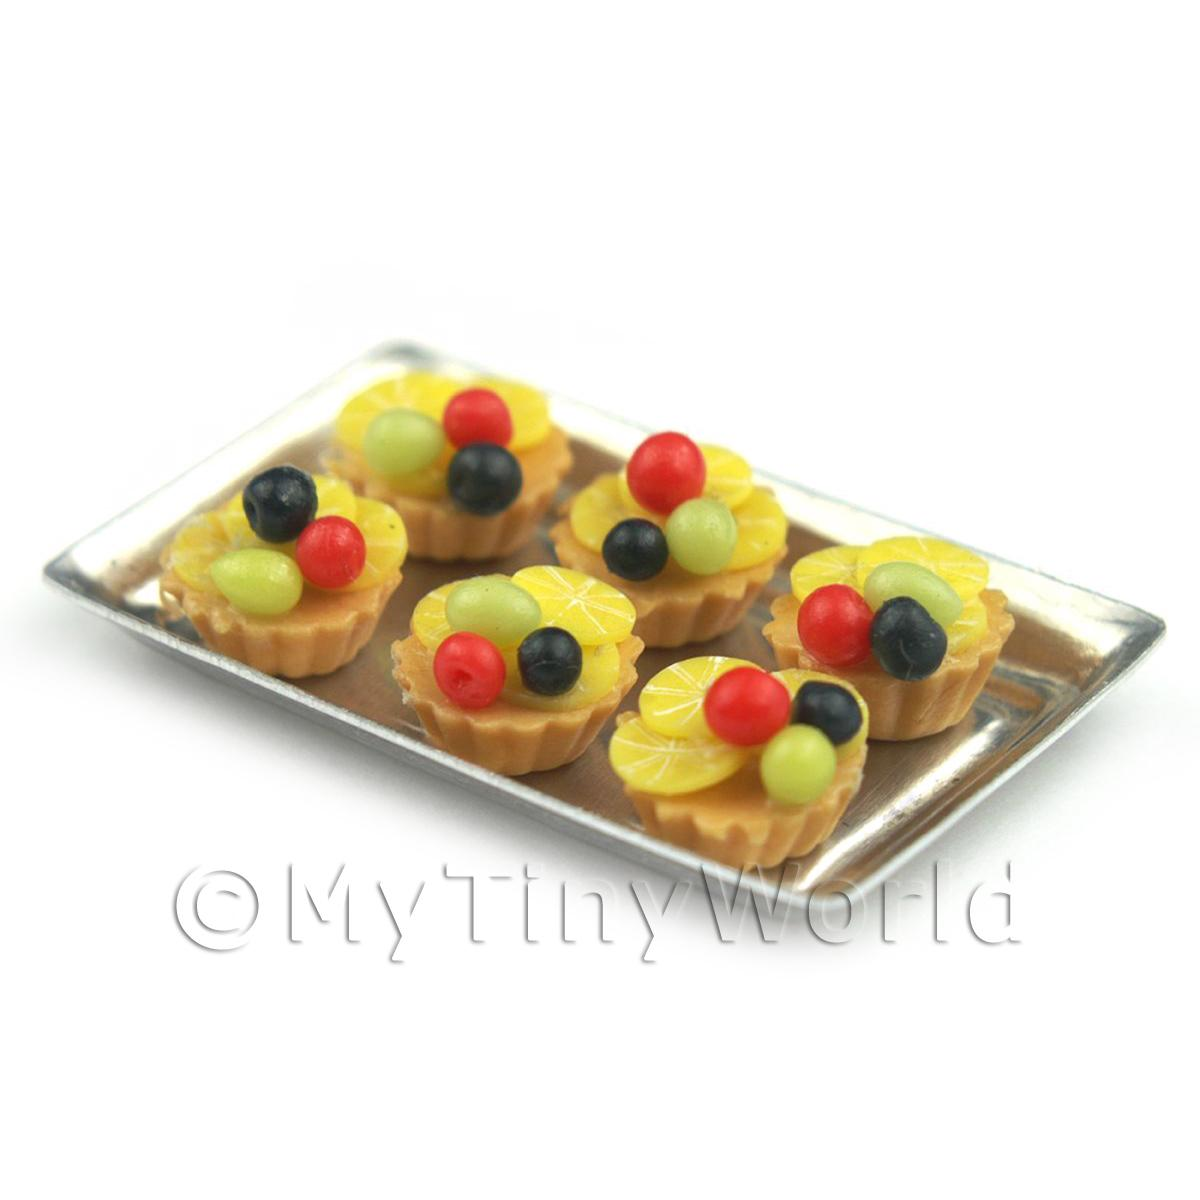 6 Loose Dolls House Miniature  Cherry and Lemon Surprise Tarts on a Tray